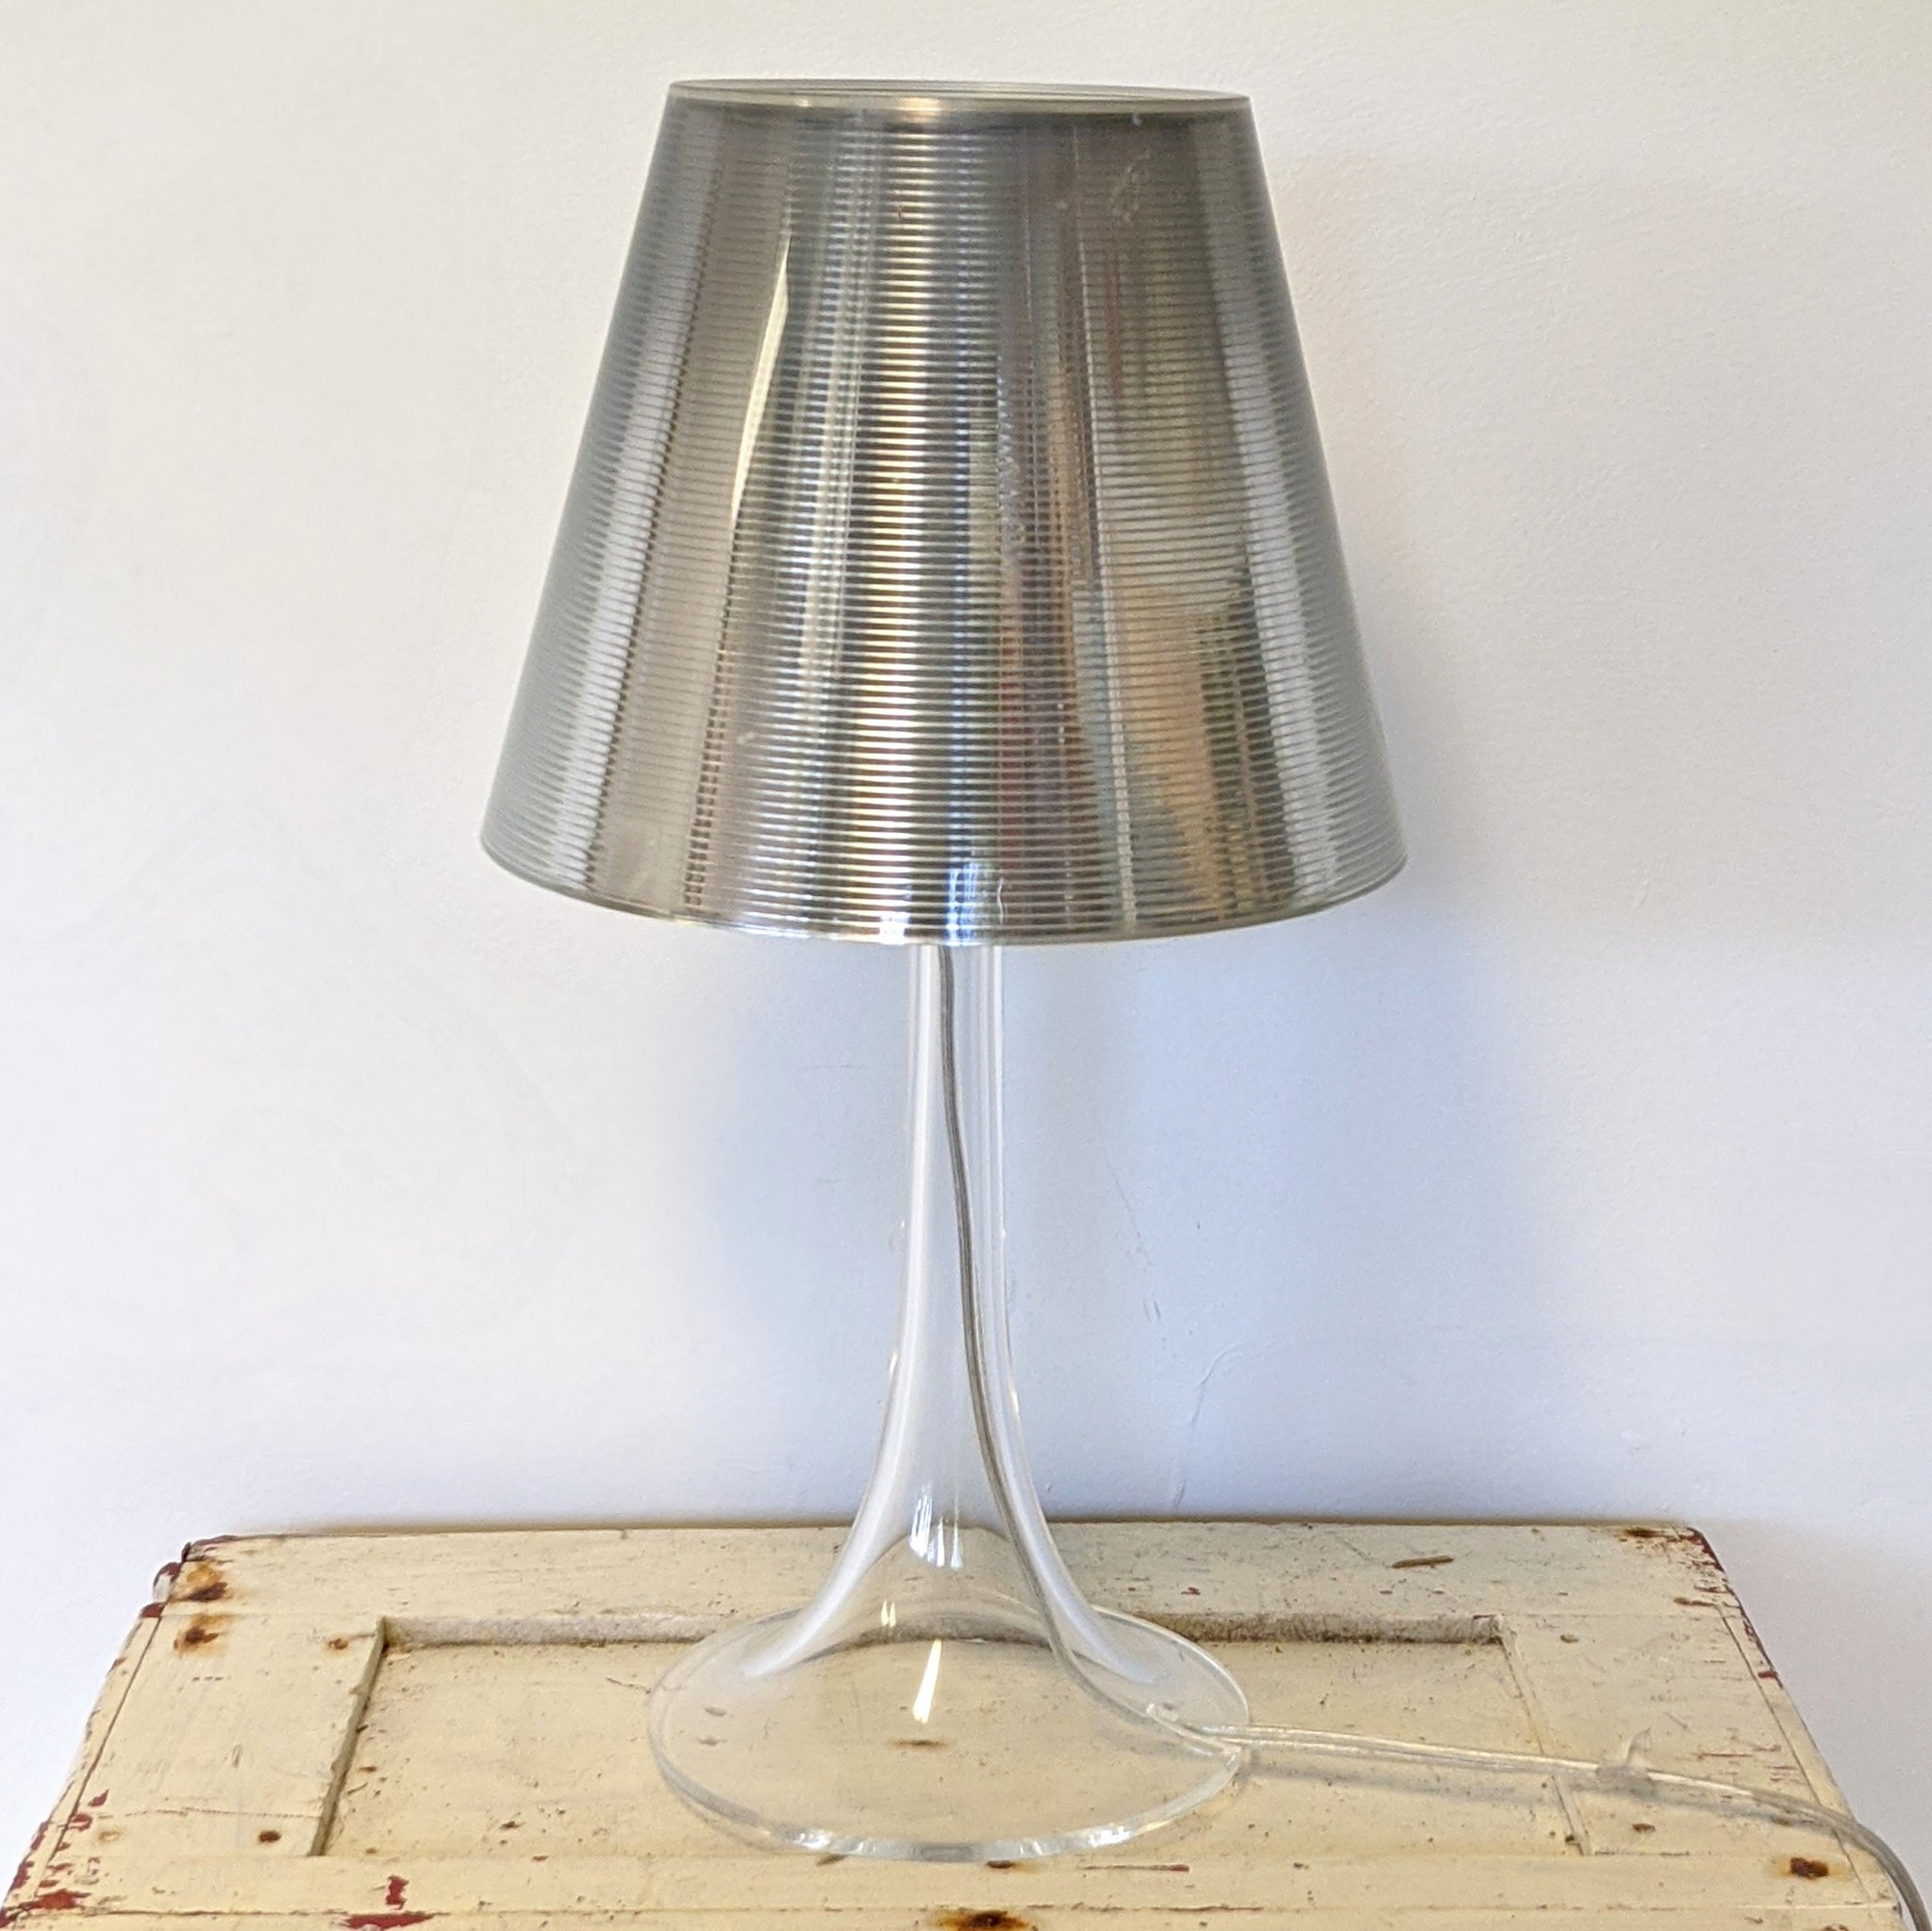 Silver Lucite lamp with cord